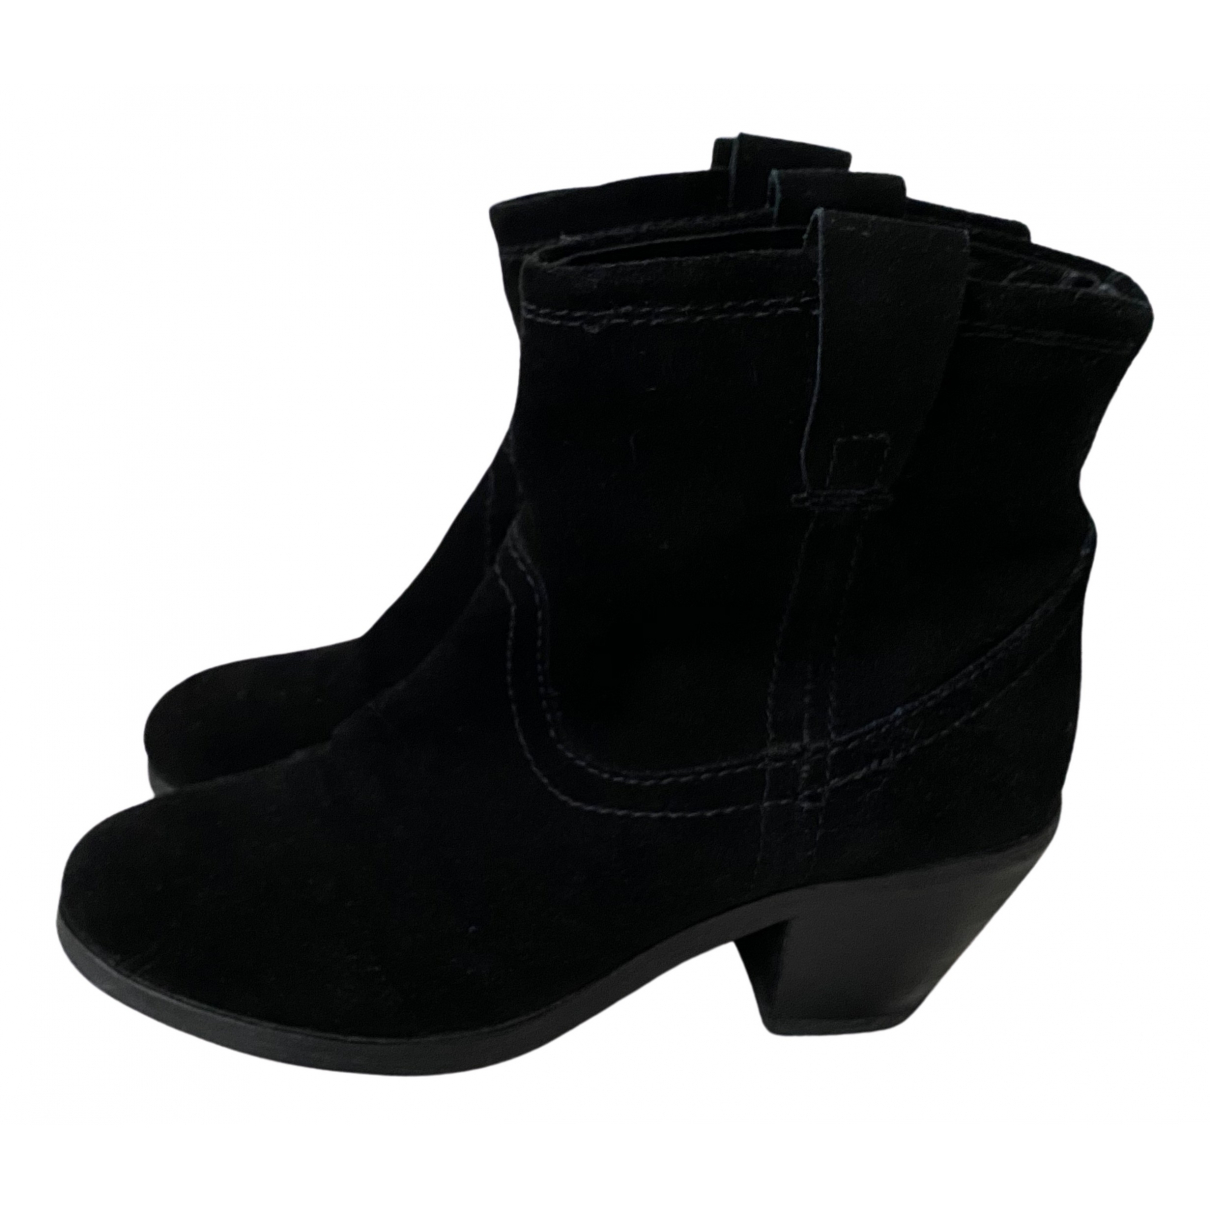 Ash N Black Suede Ankle boots for Women 37 EU